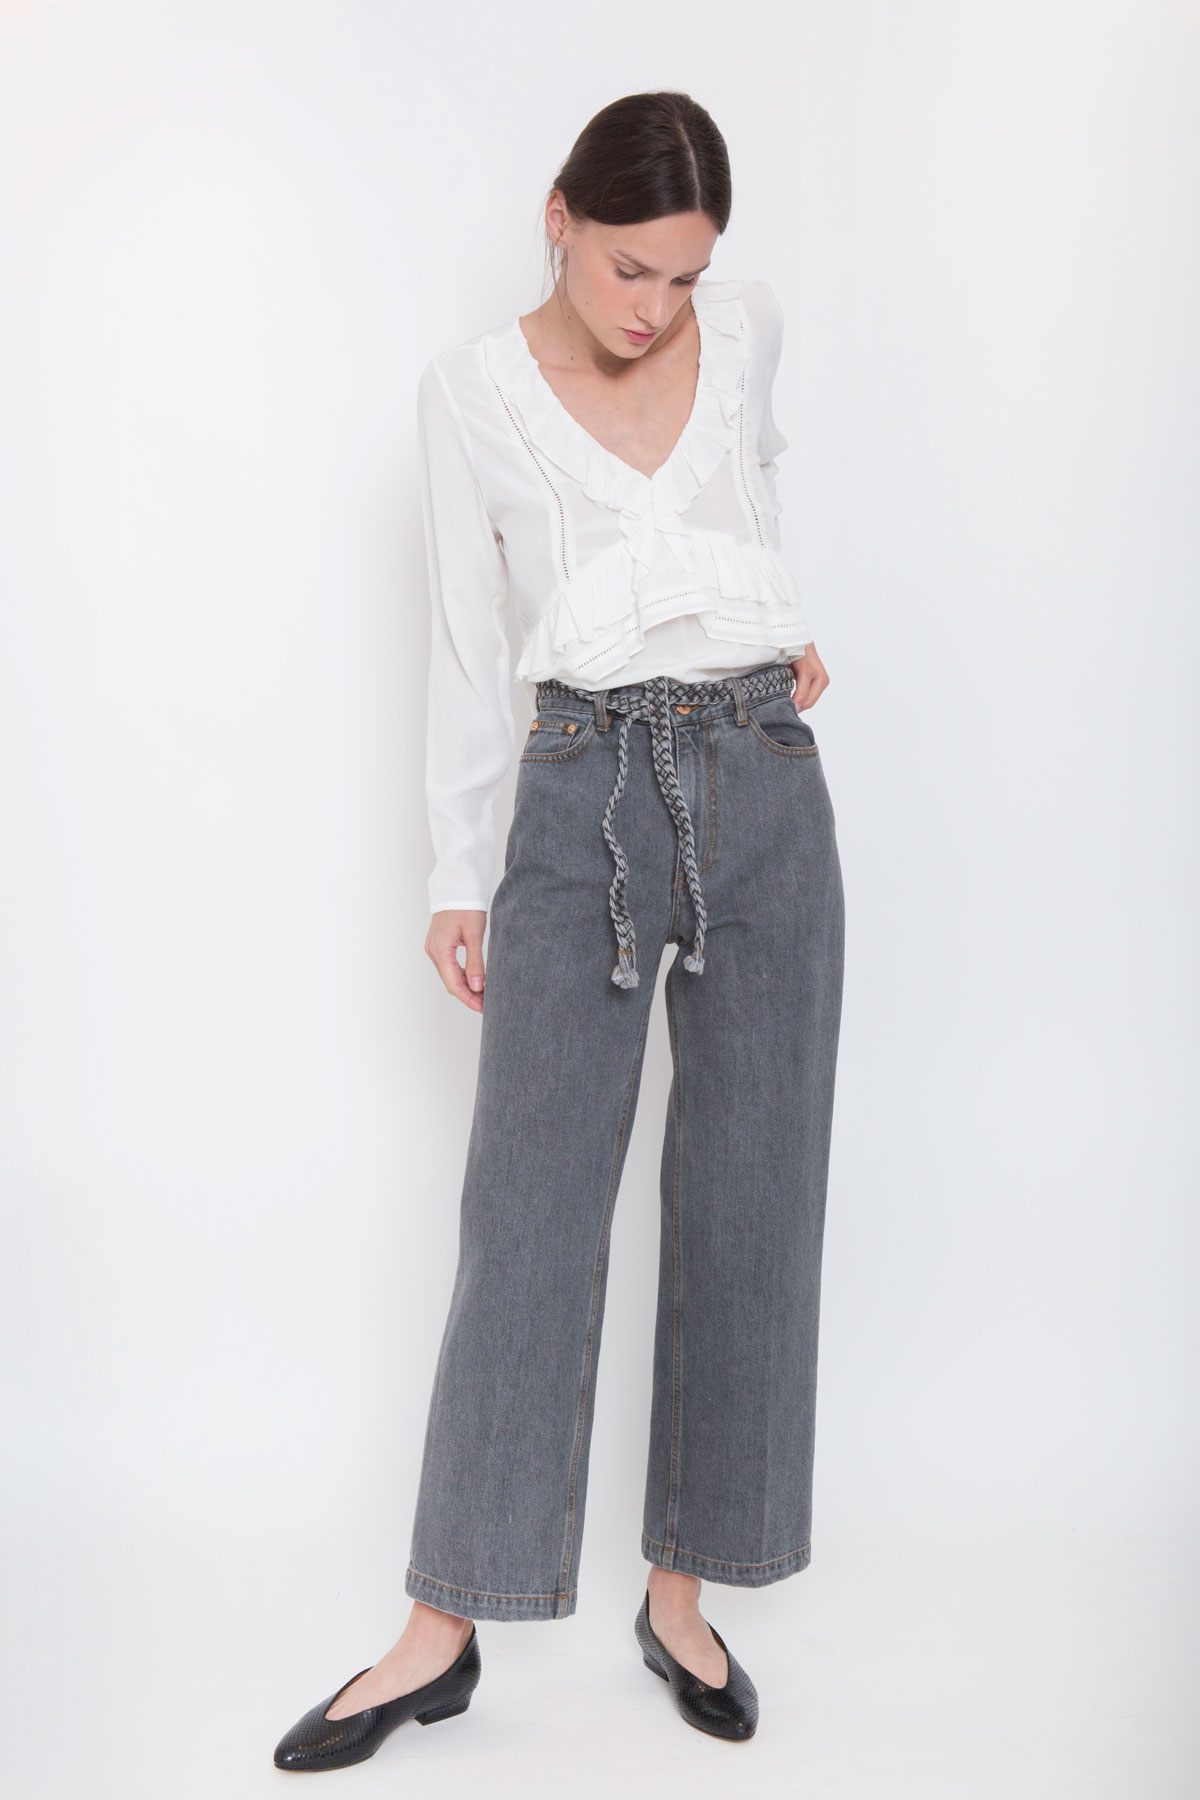 sully-jeans-trousers-pants-labdip-grey-cropped-matchboxathens